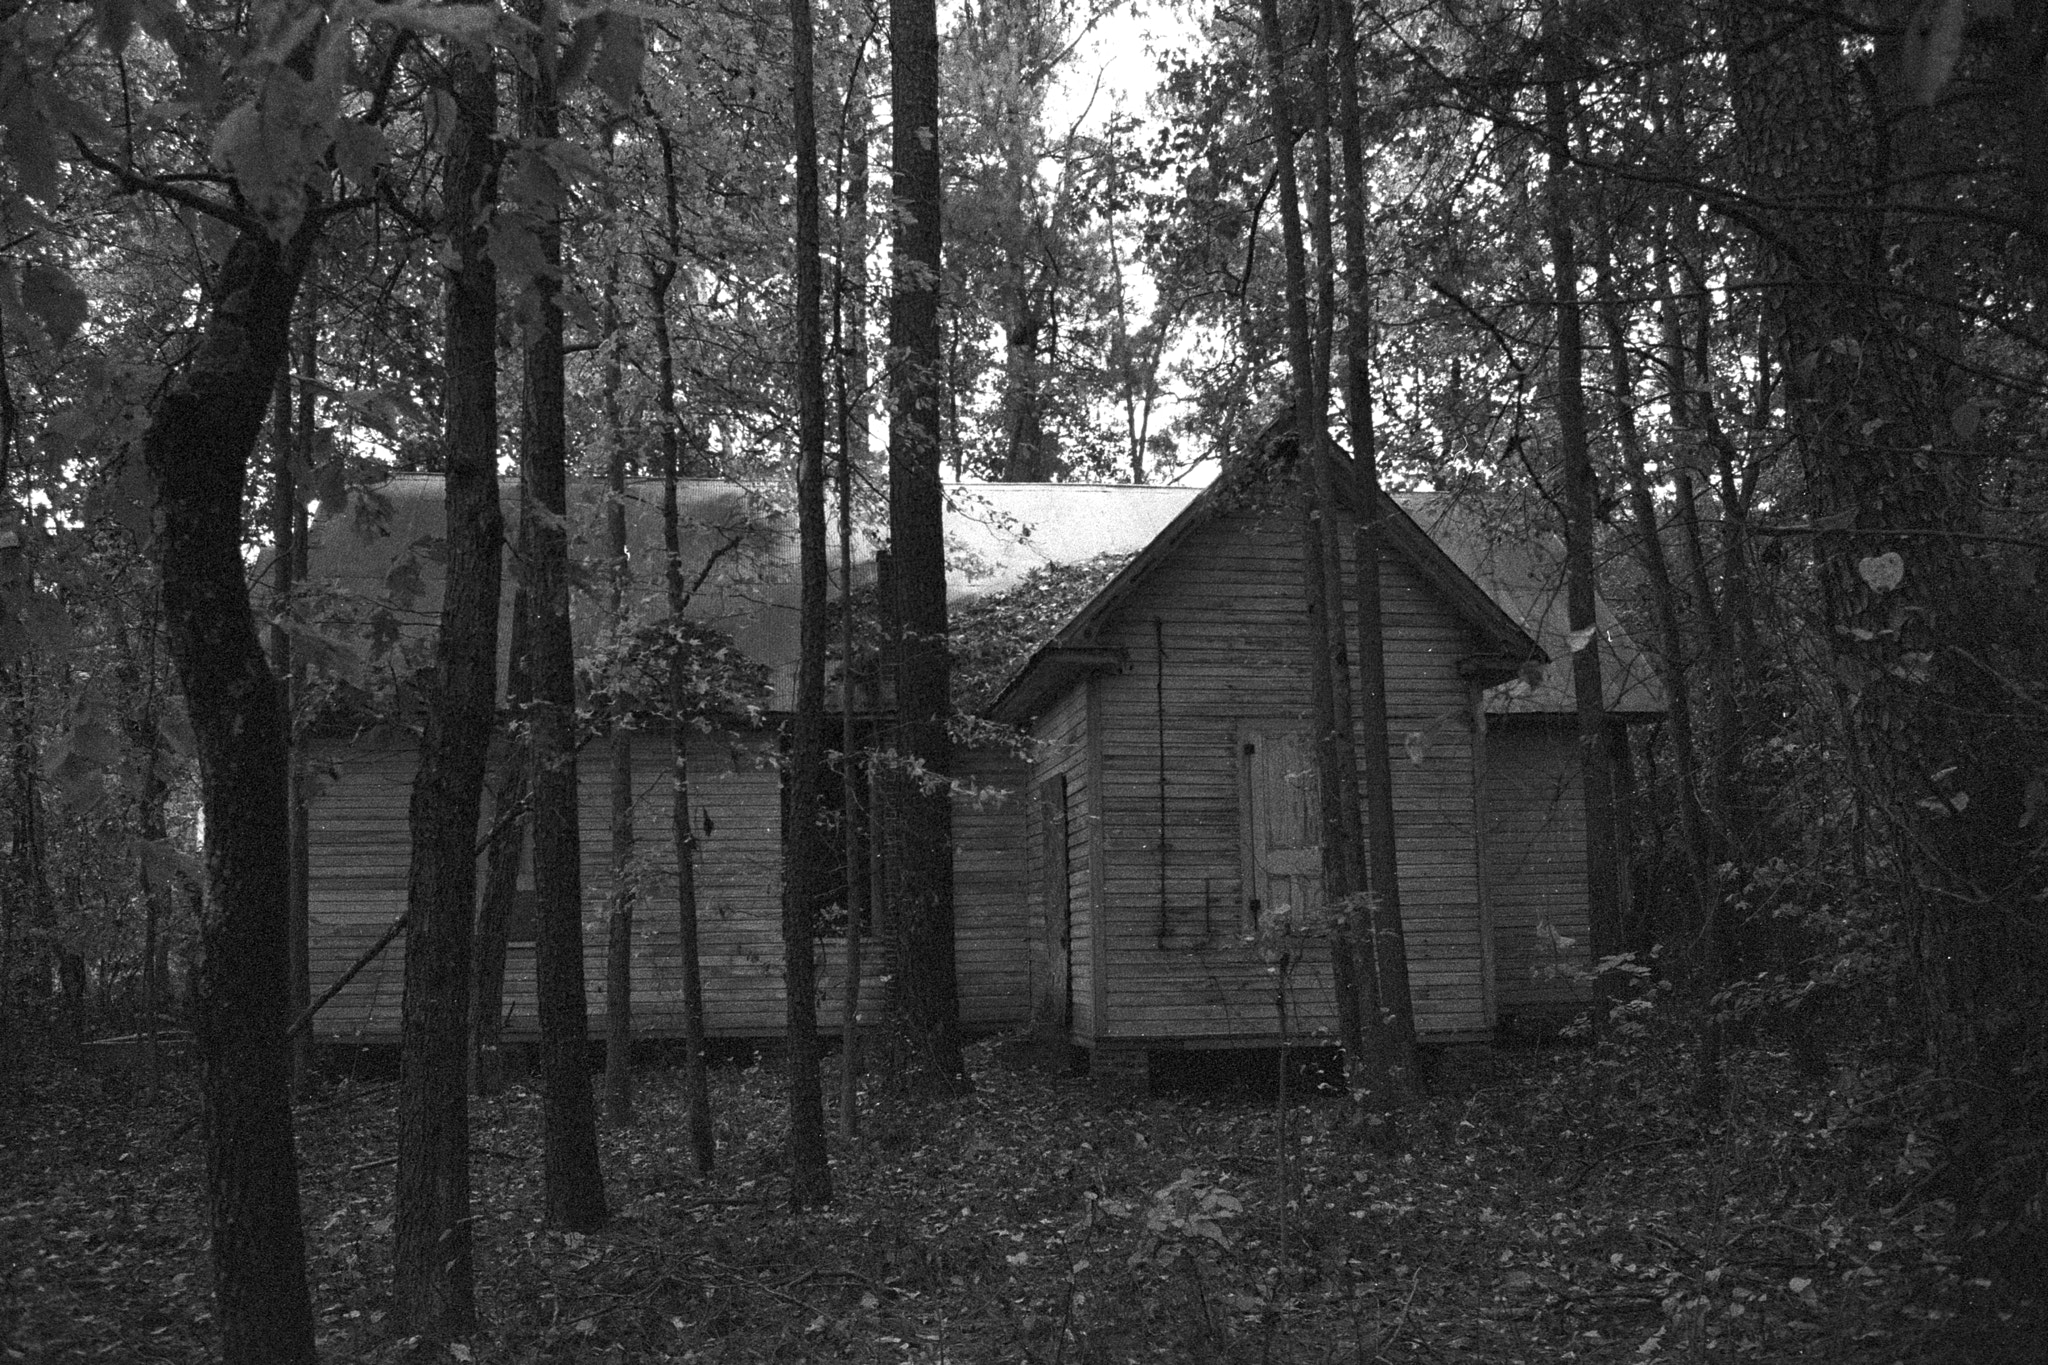 Photograph Abandoned Church in the Woods, Southern Maryland by L.E. Miller on 500px